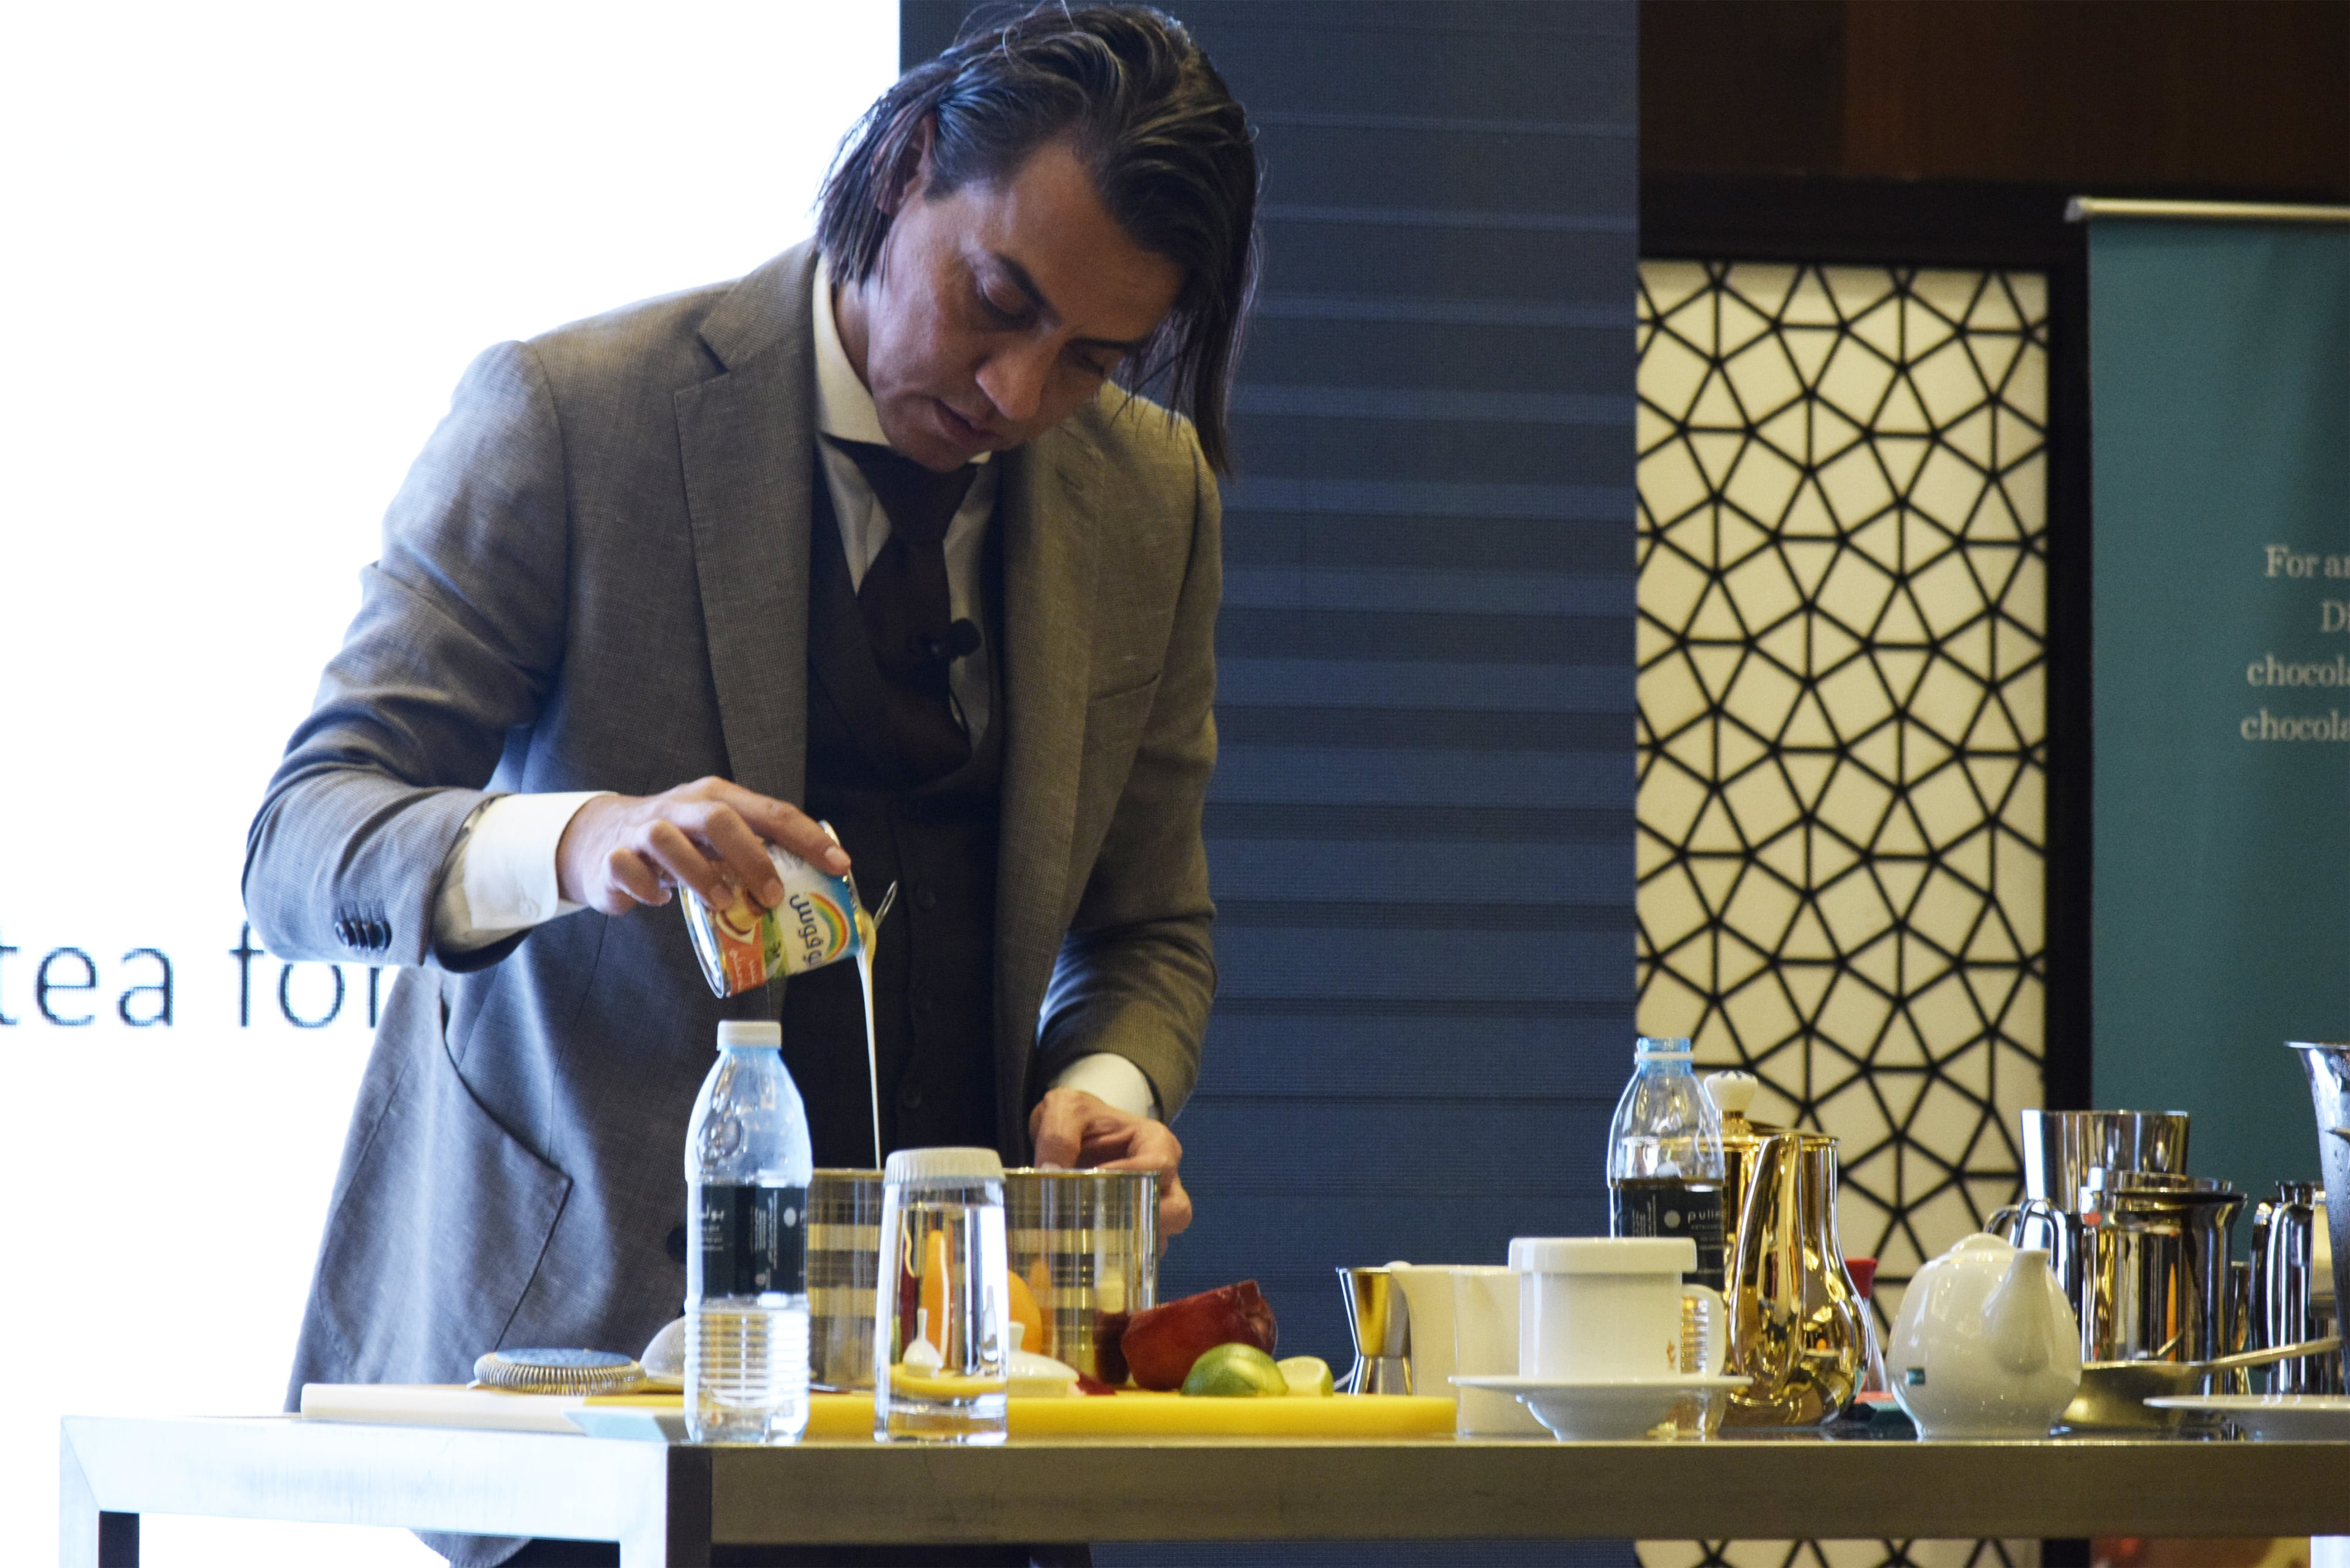 Robert Schinkel conducting the Tea Inspired Mixology session